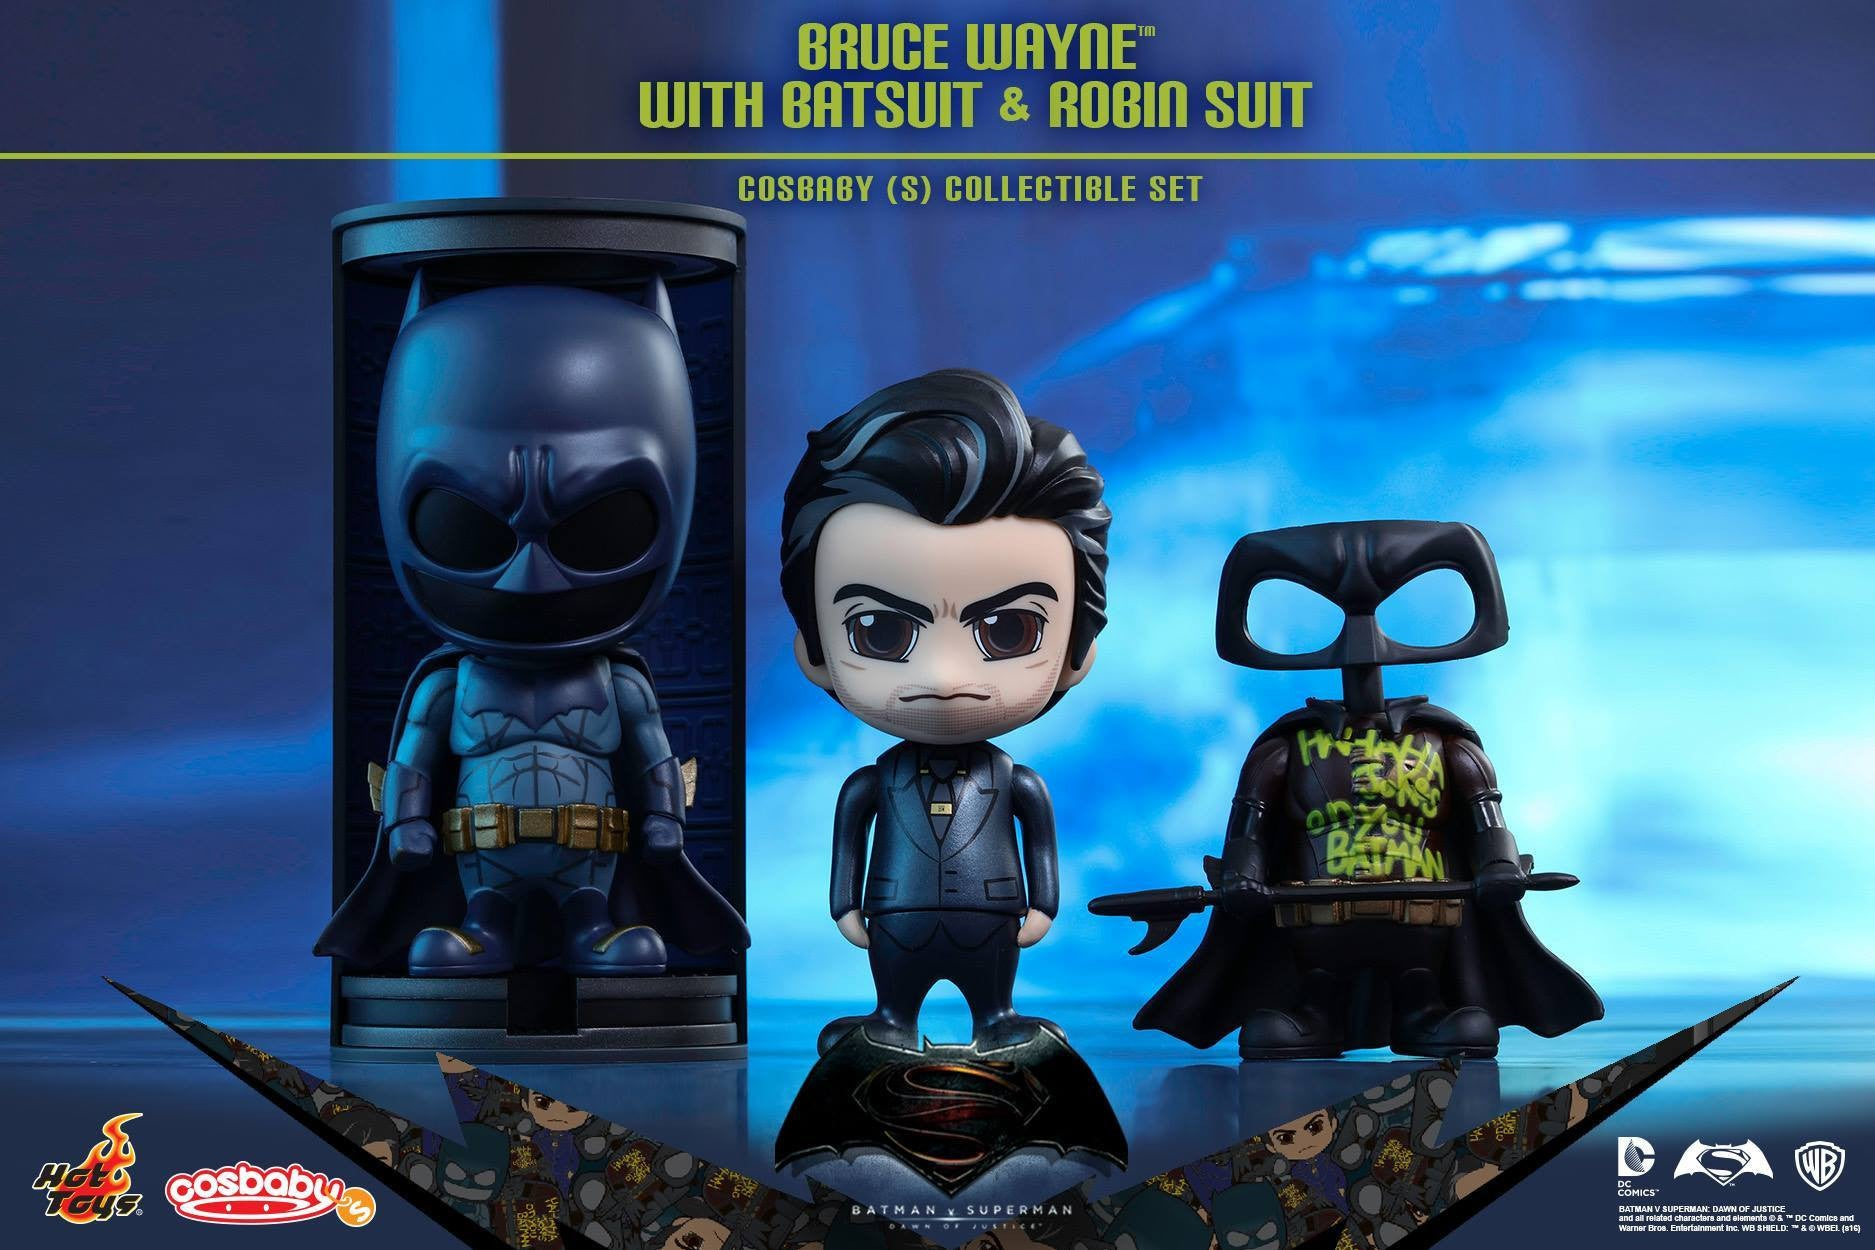 Hot Toys - COSB245 - Batman v Superman Dawn of Justice - Bruce Wayne with Batsuit and Robin Suit Cosbaby (S) Collectible Set - Marvelous Toys - 1